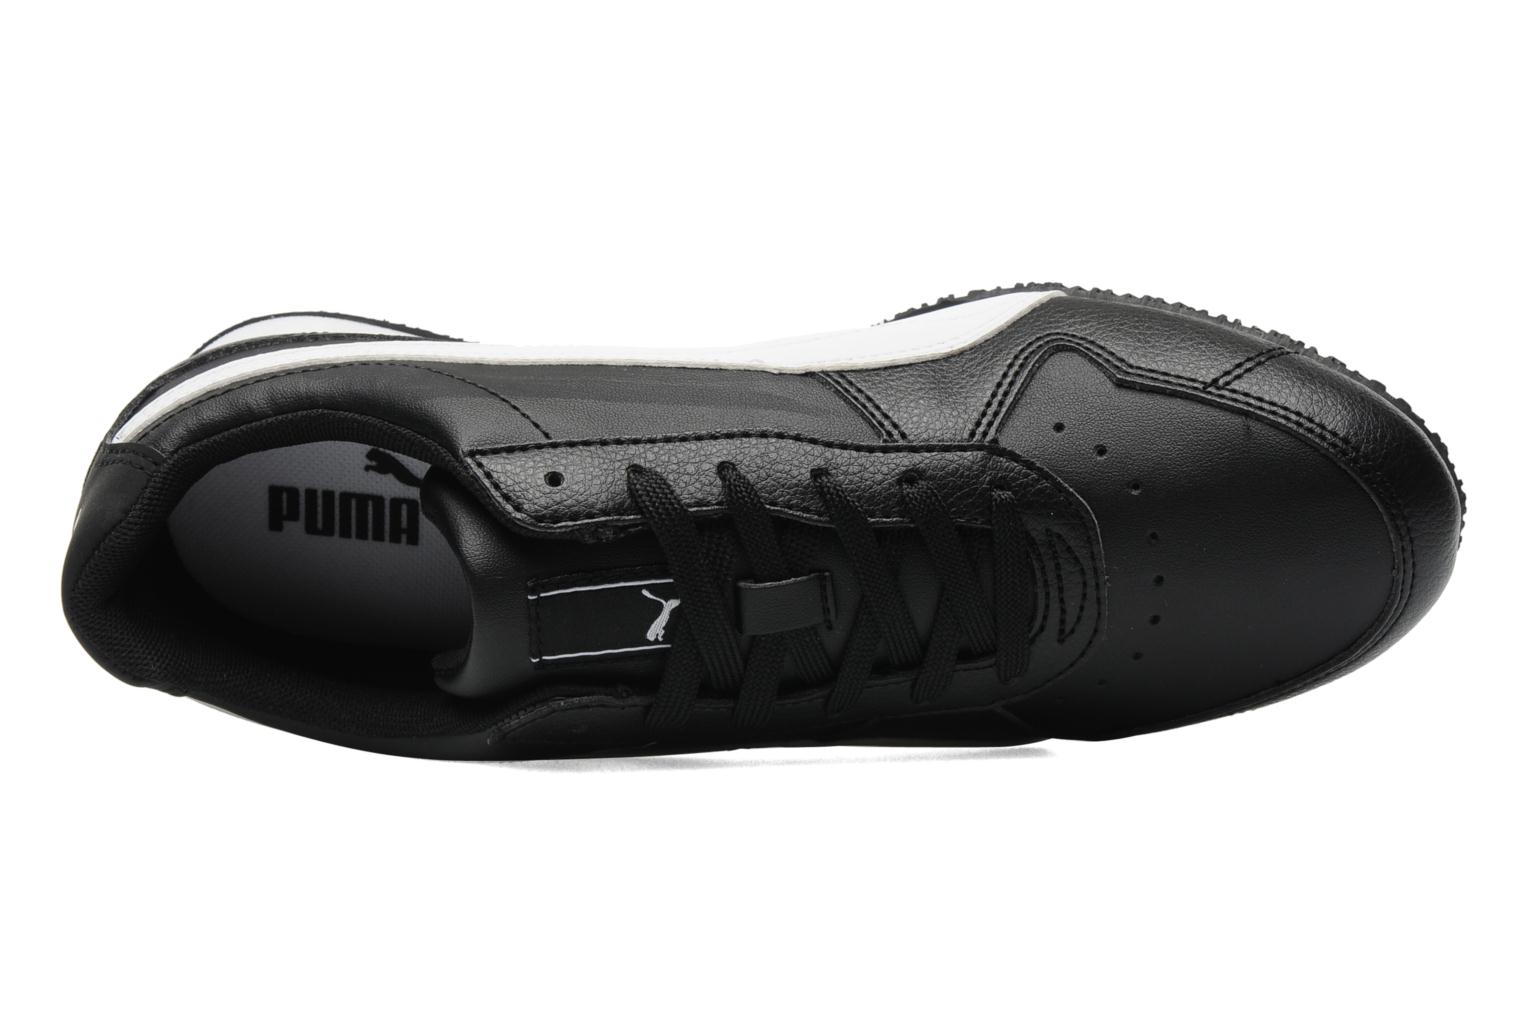 Puma Fieldster Black-White